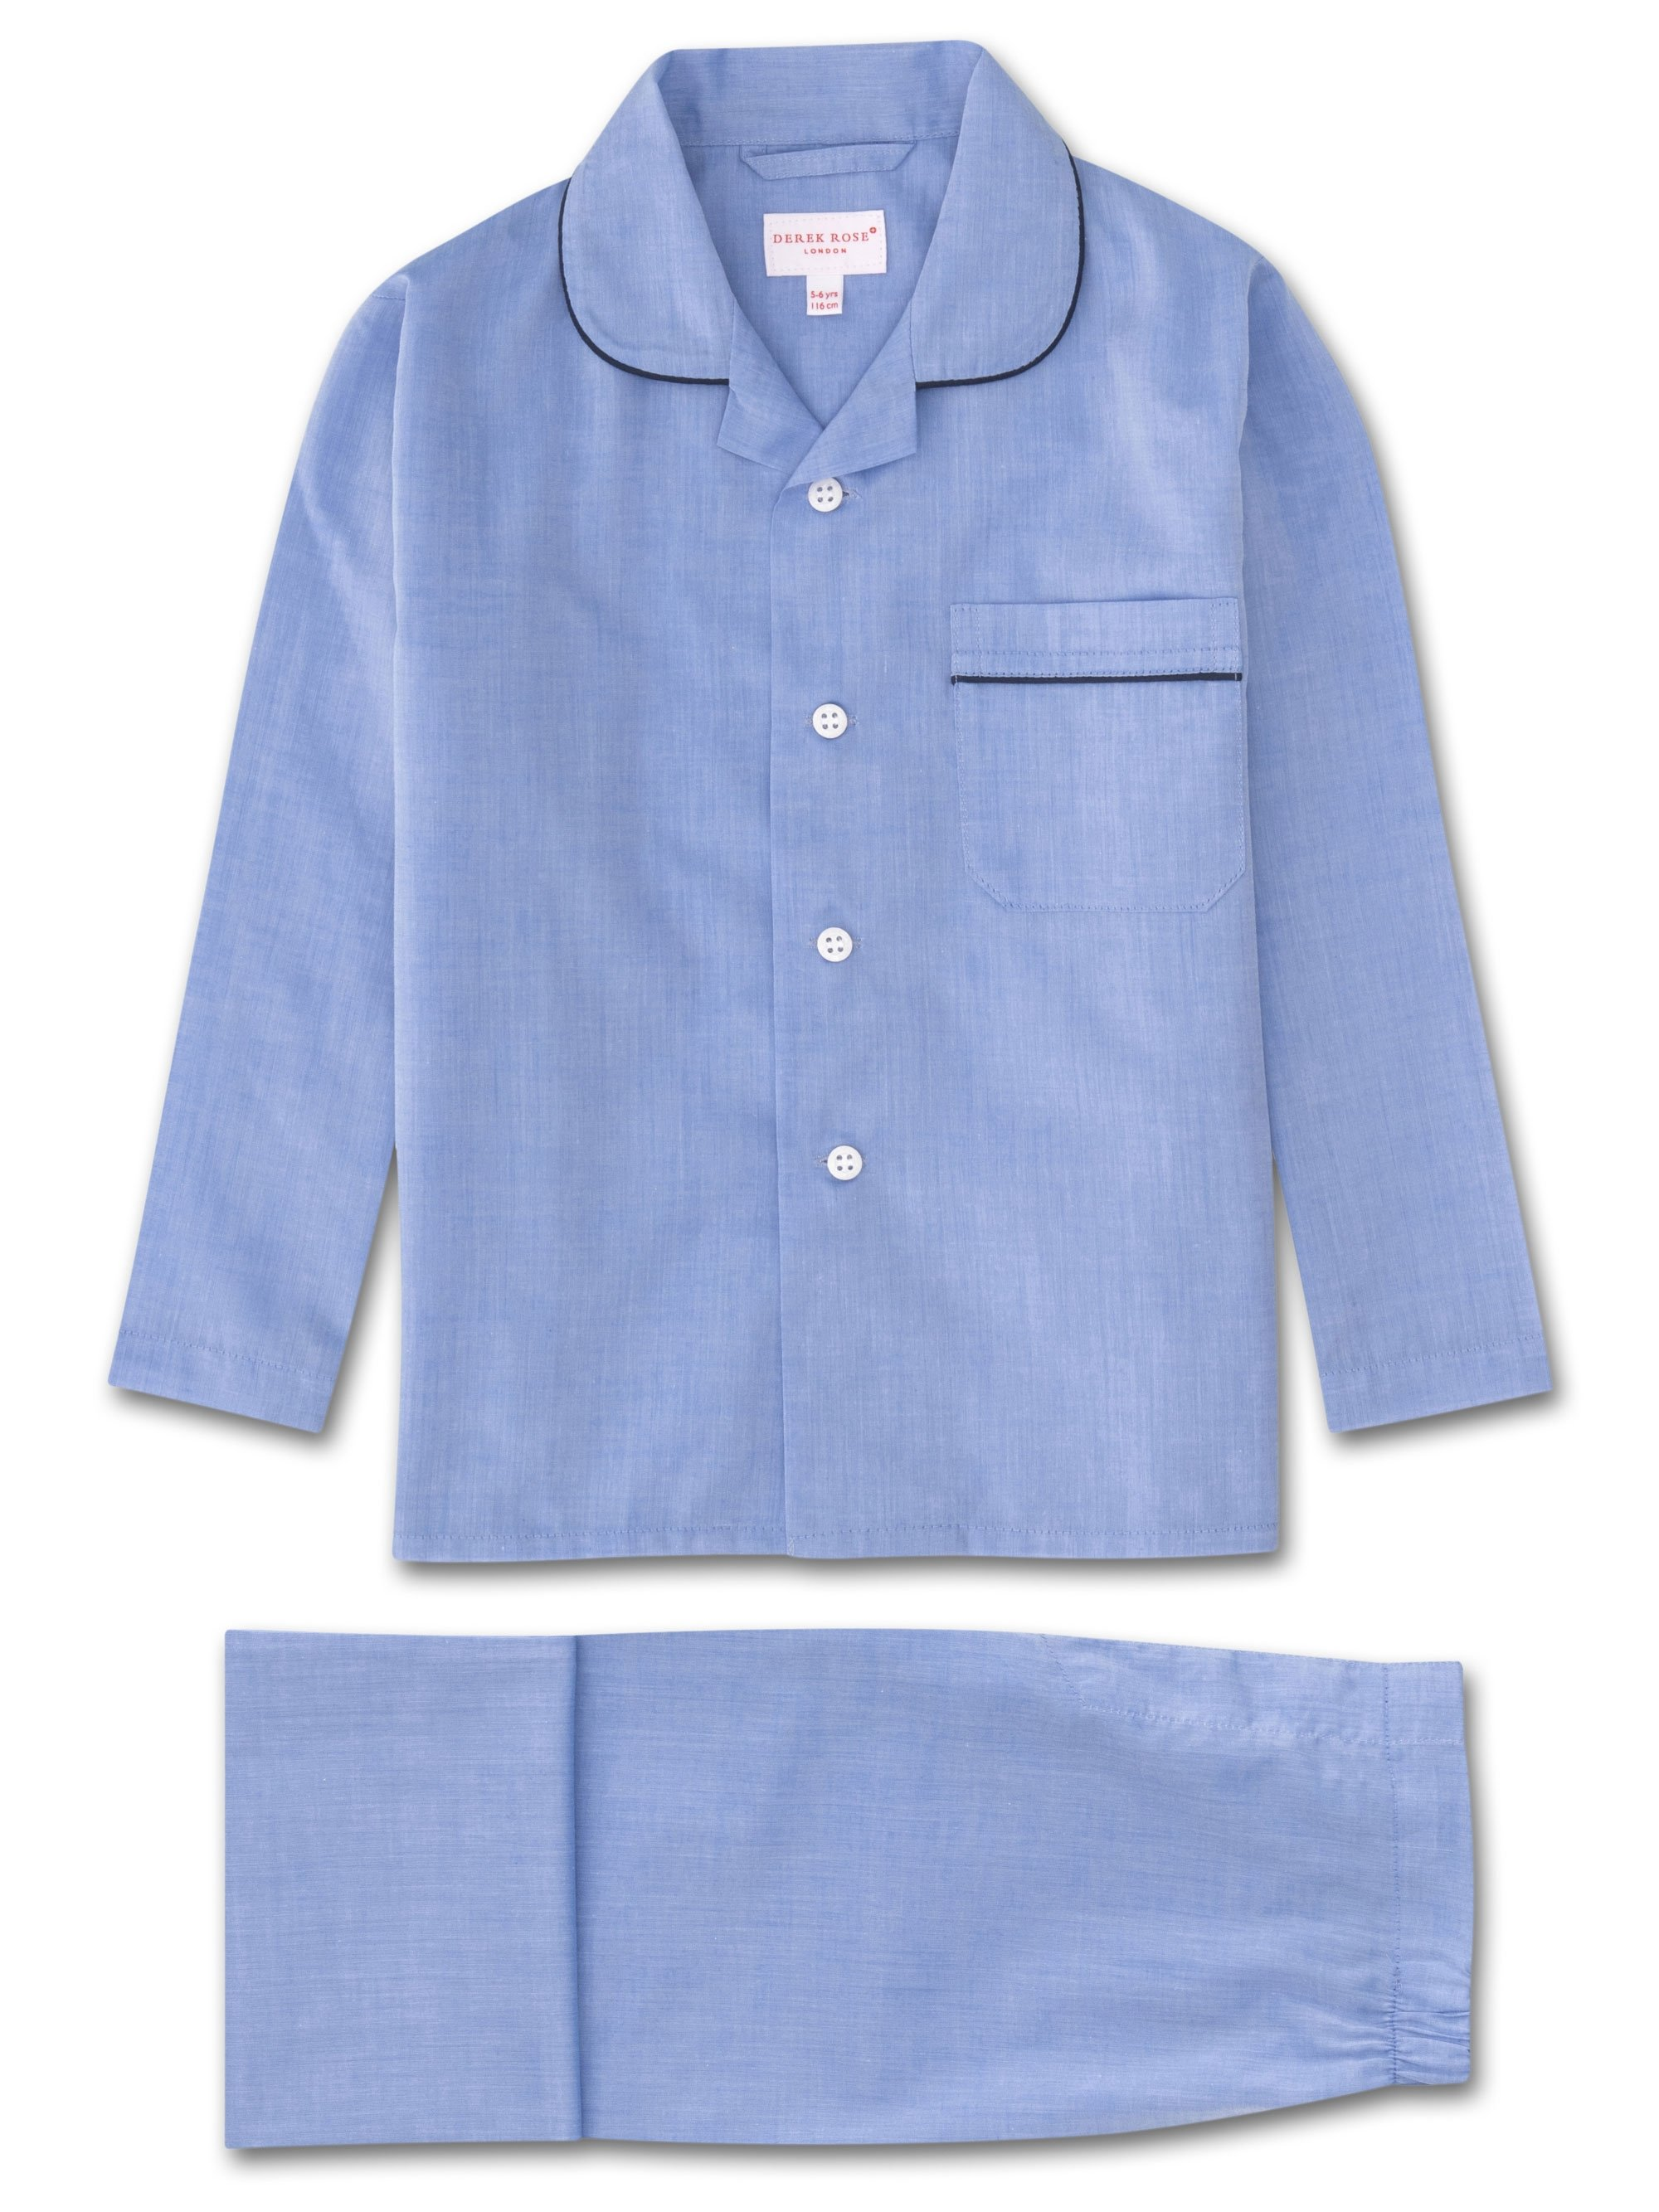 Kids' Pyjamas Amalfi Cotton Batiste Blue